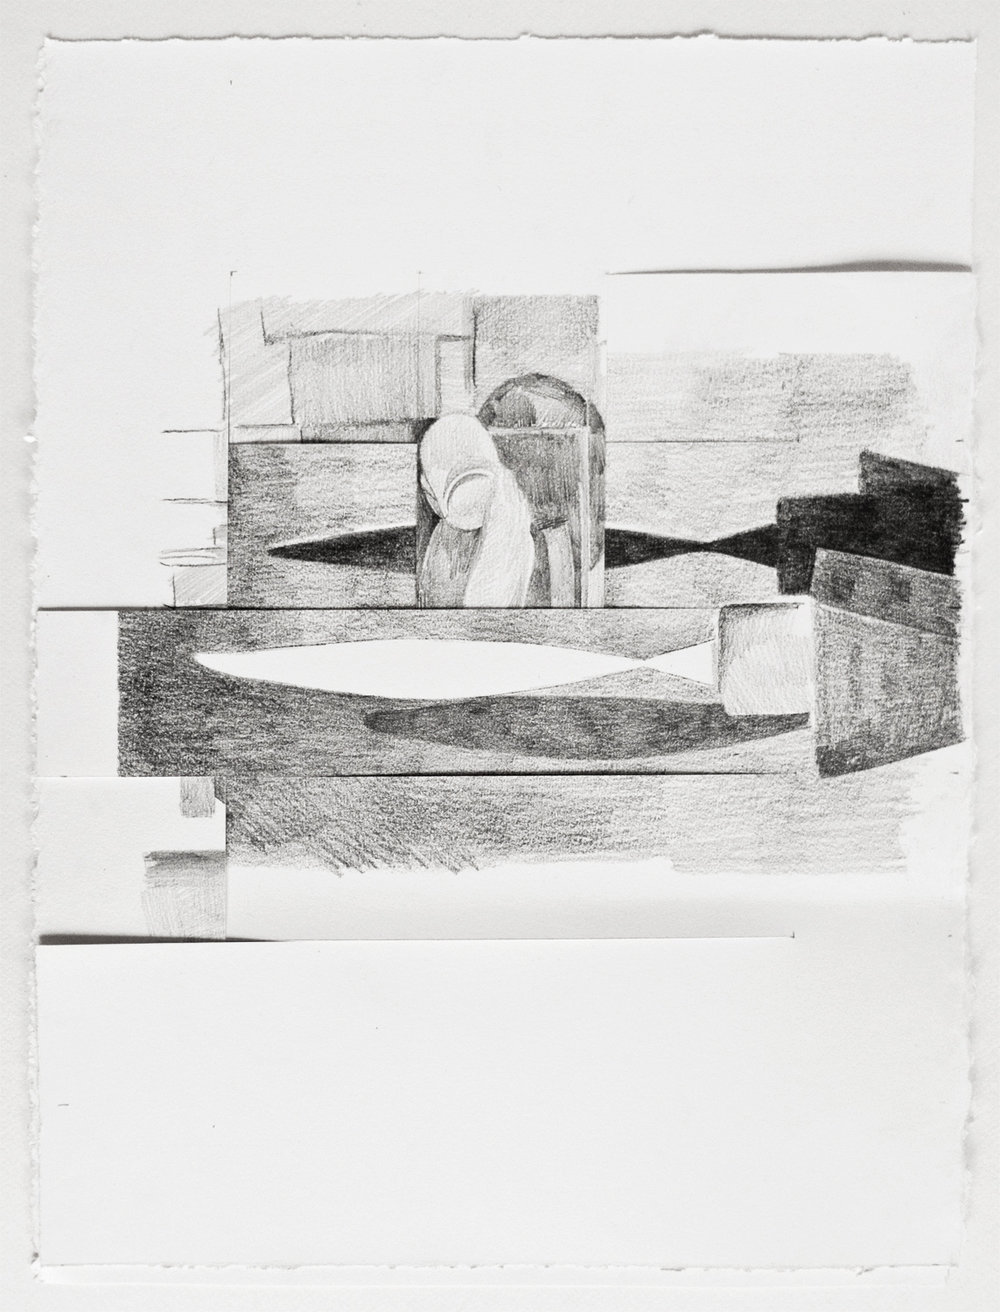 CUTS #3 (2016) pencil on paper, 37.5 x 29 cm